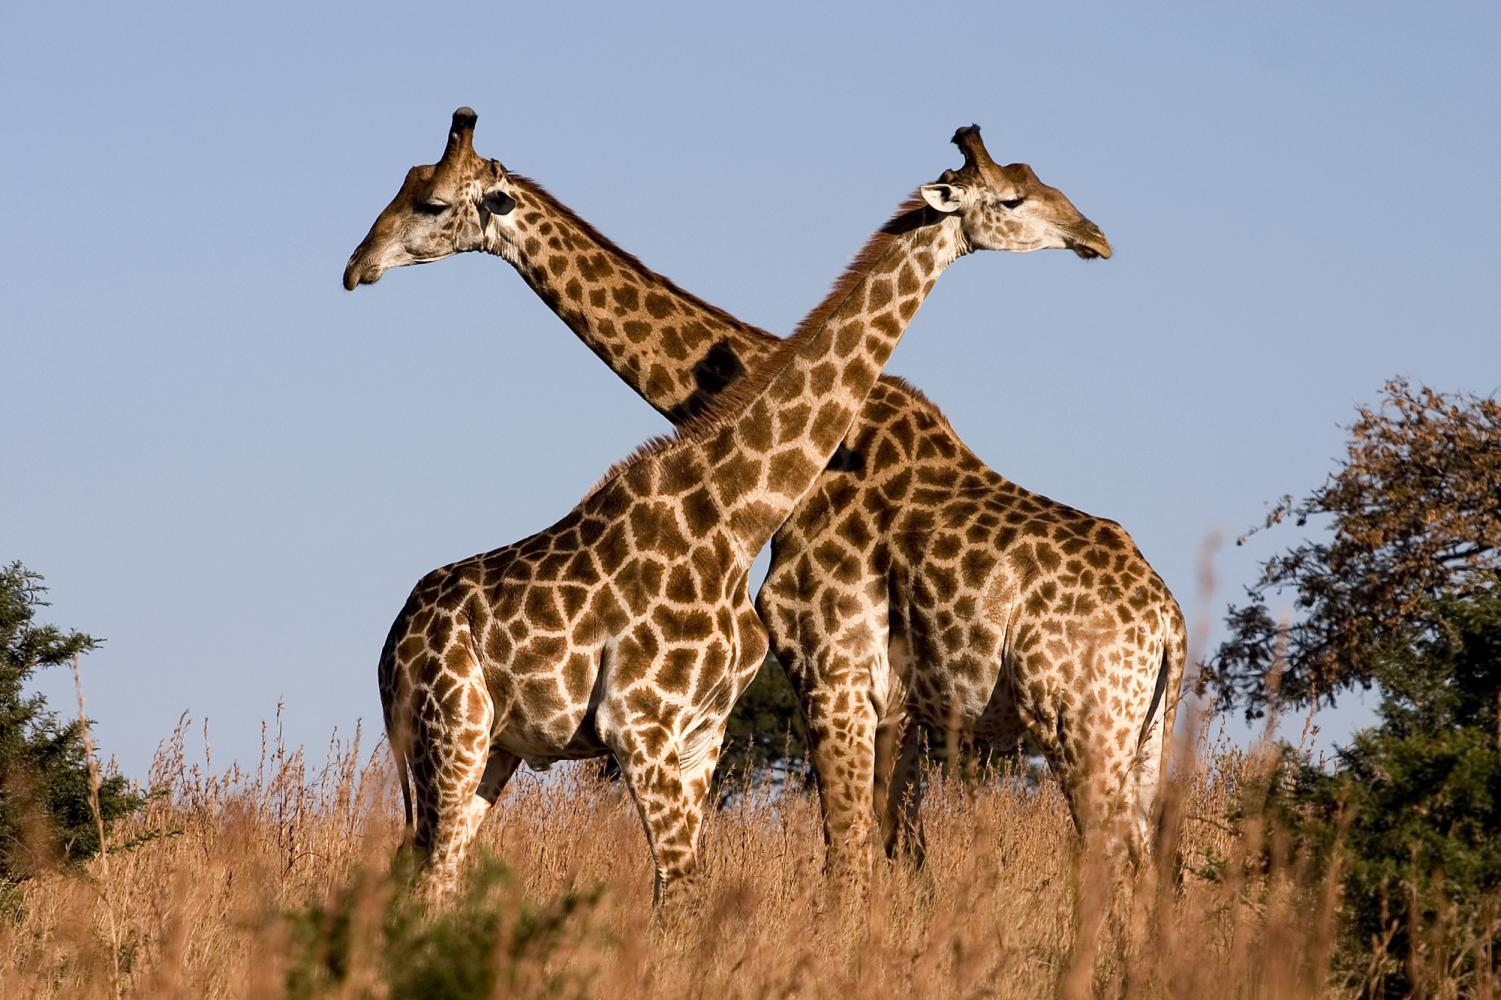 Giraffes have the highest blood pressure out of the entire animal kingdom because they have such long necks.